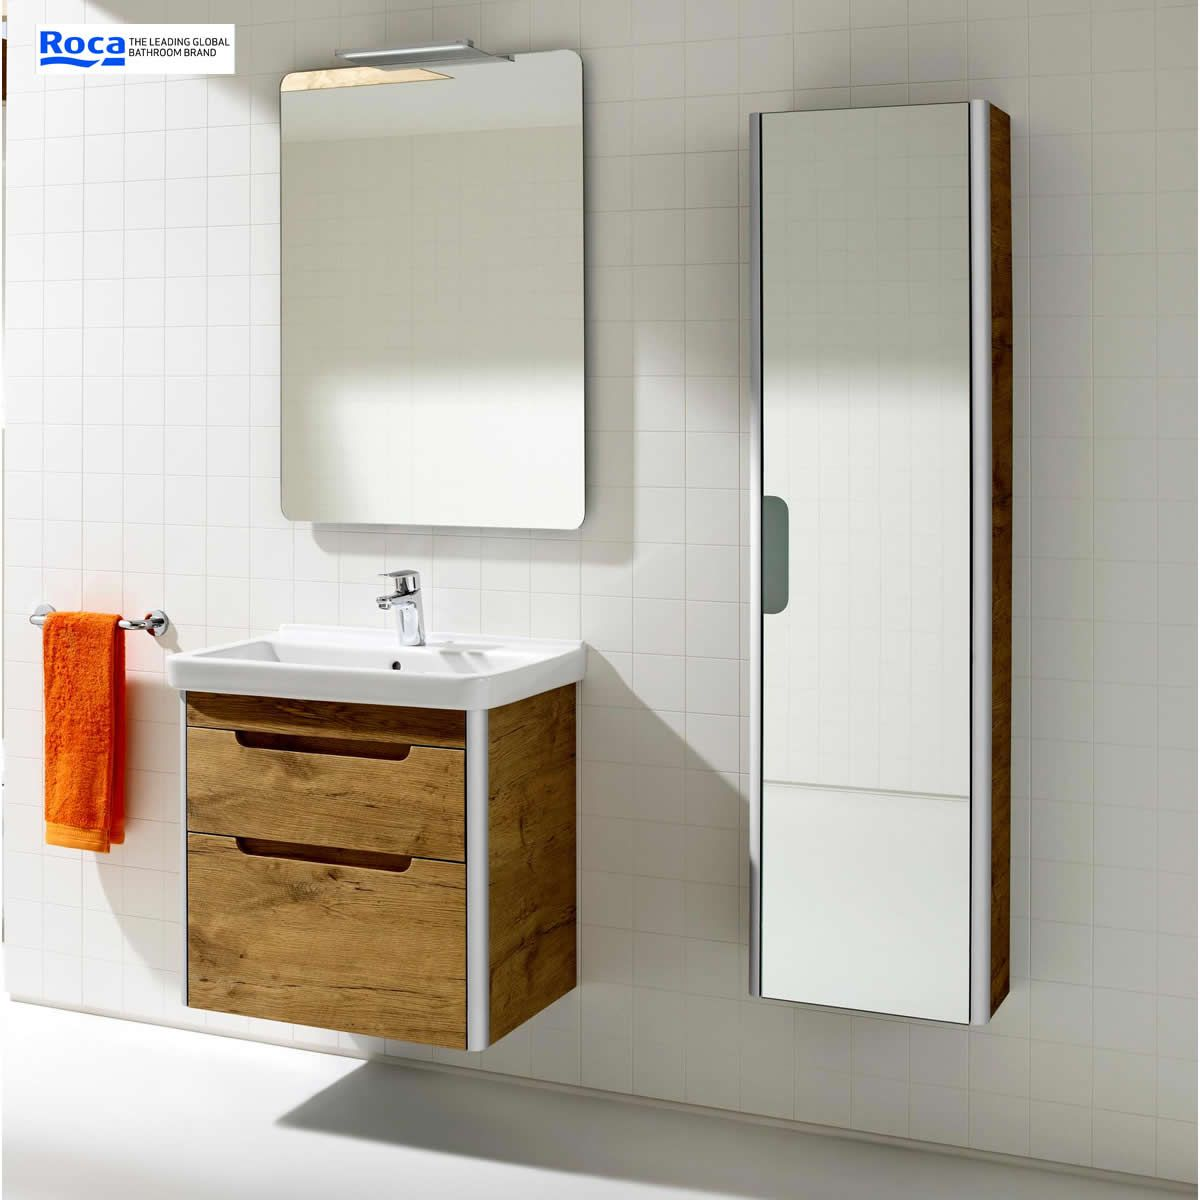 roca bathroom cabinets roca dama n mirror column unit uk bathrooms 25596